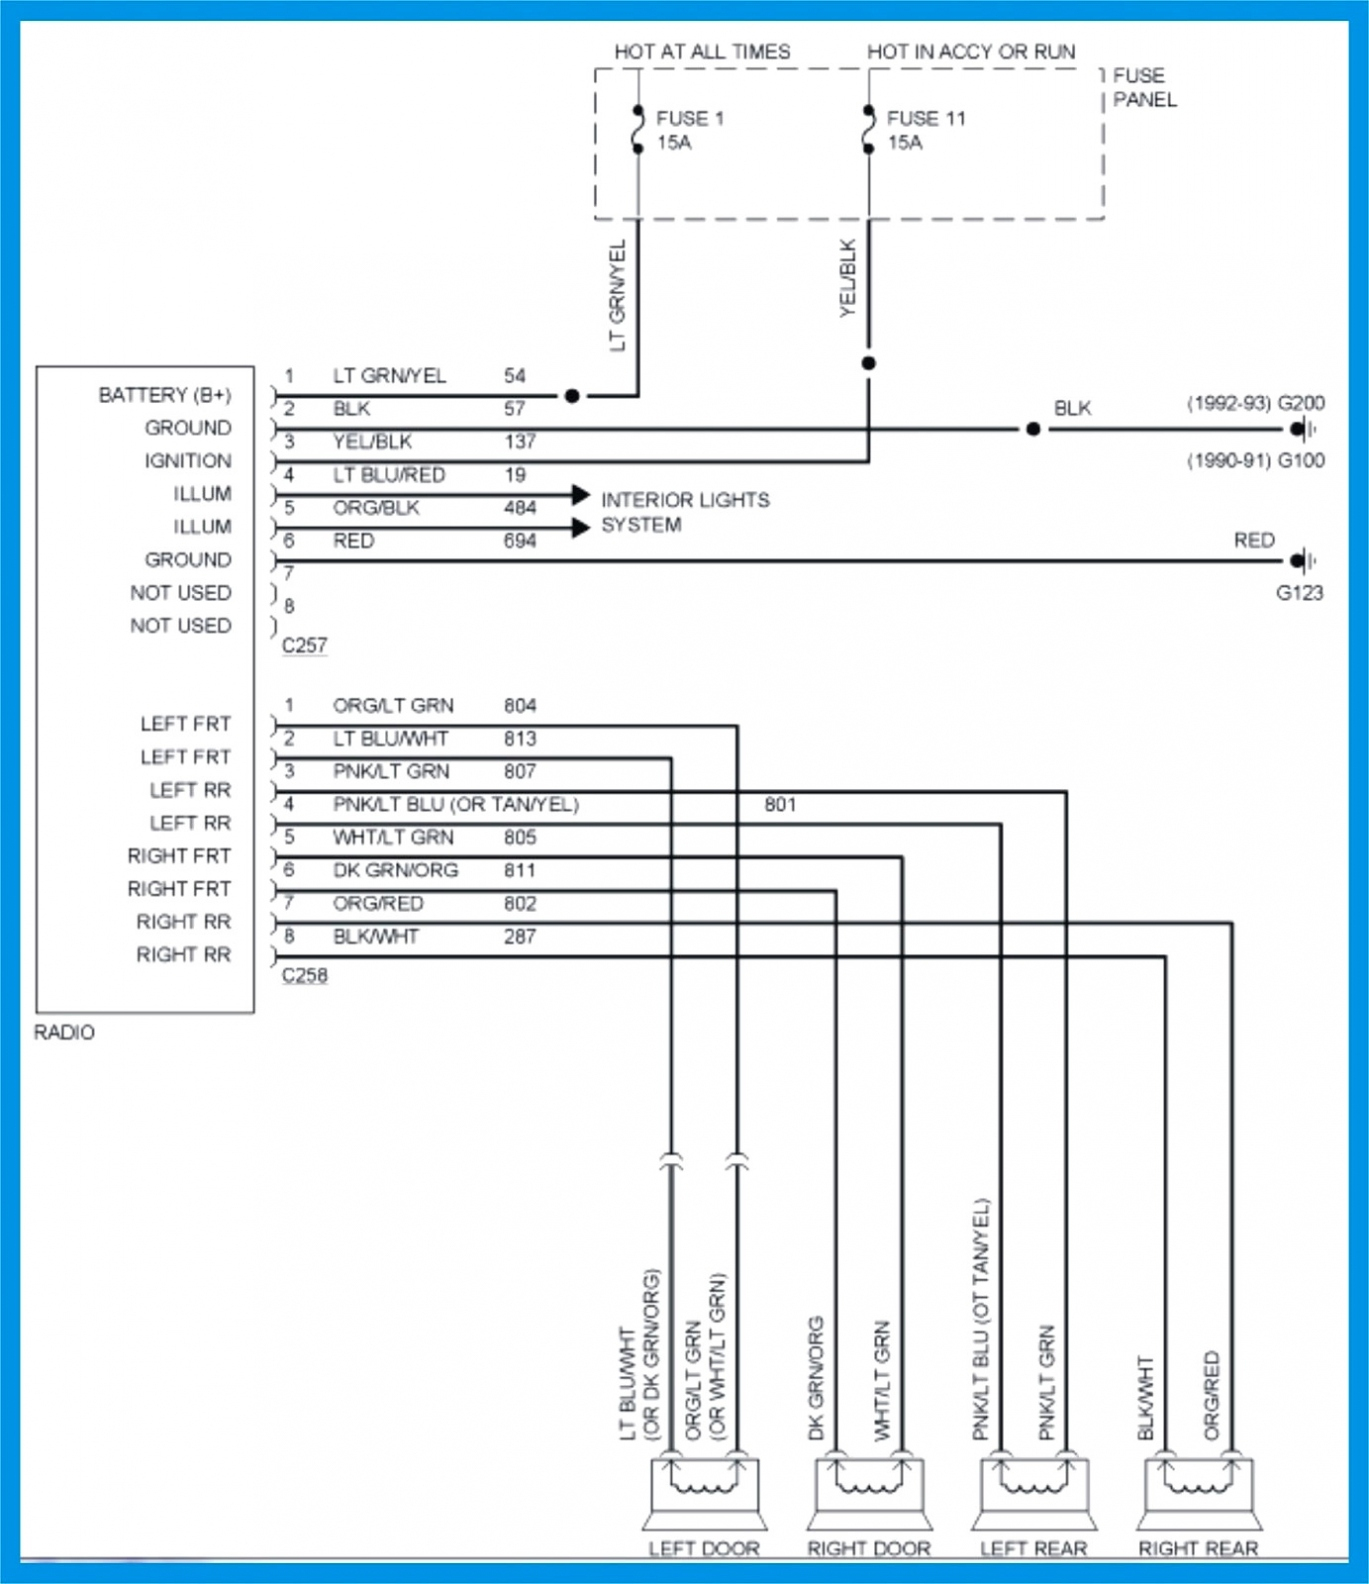 2005 Ford Explorer Wiring Harness Diagram - Wiring Diagrams Hubs - 2002 Ford Explorer Radio Wiring Diagram